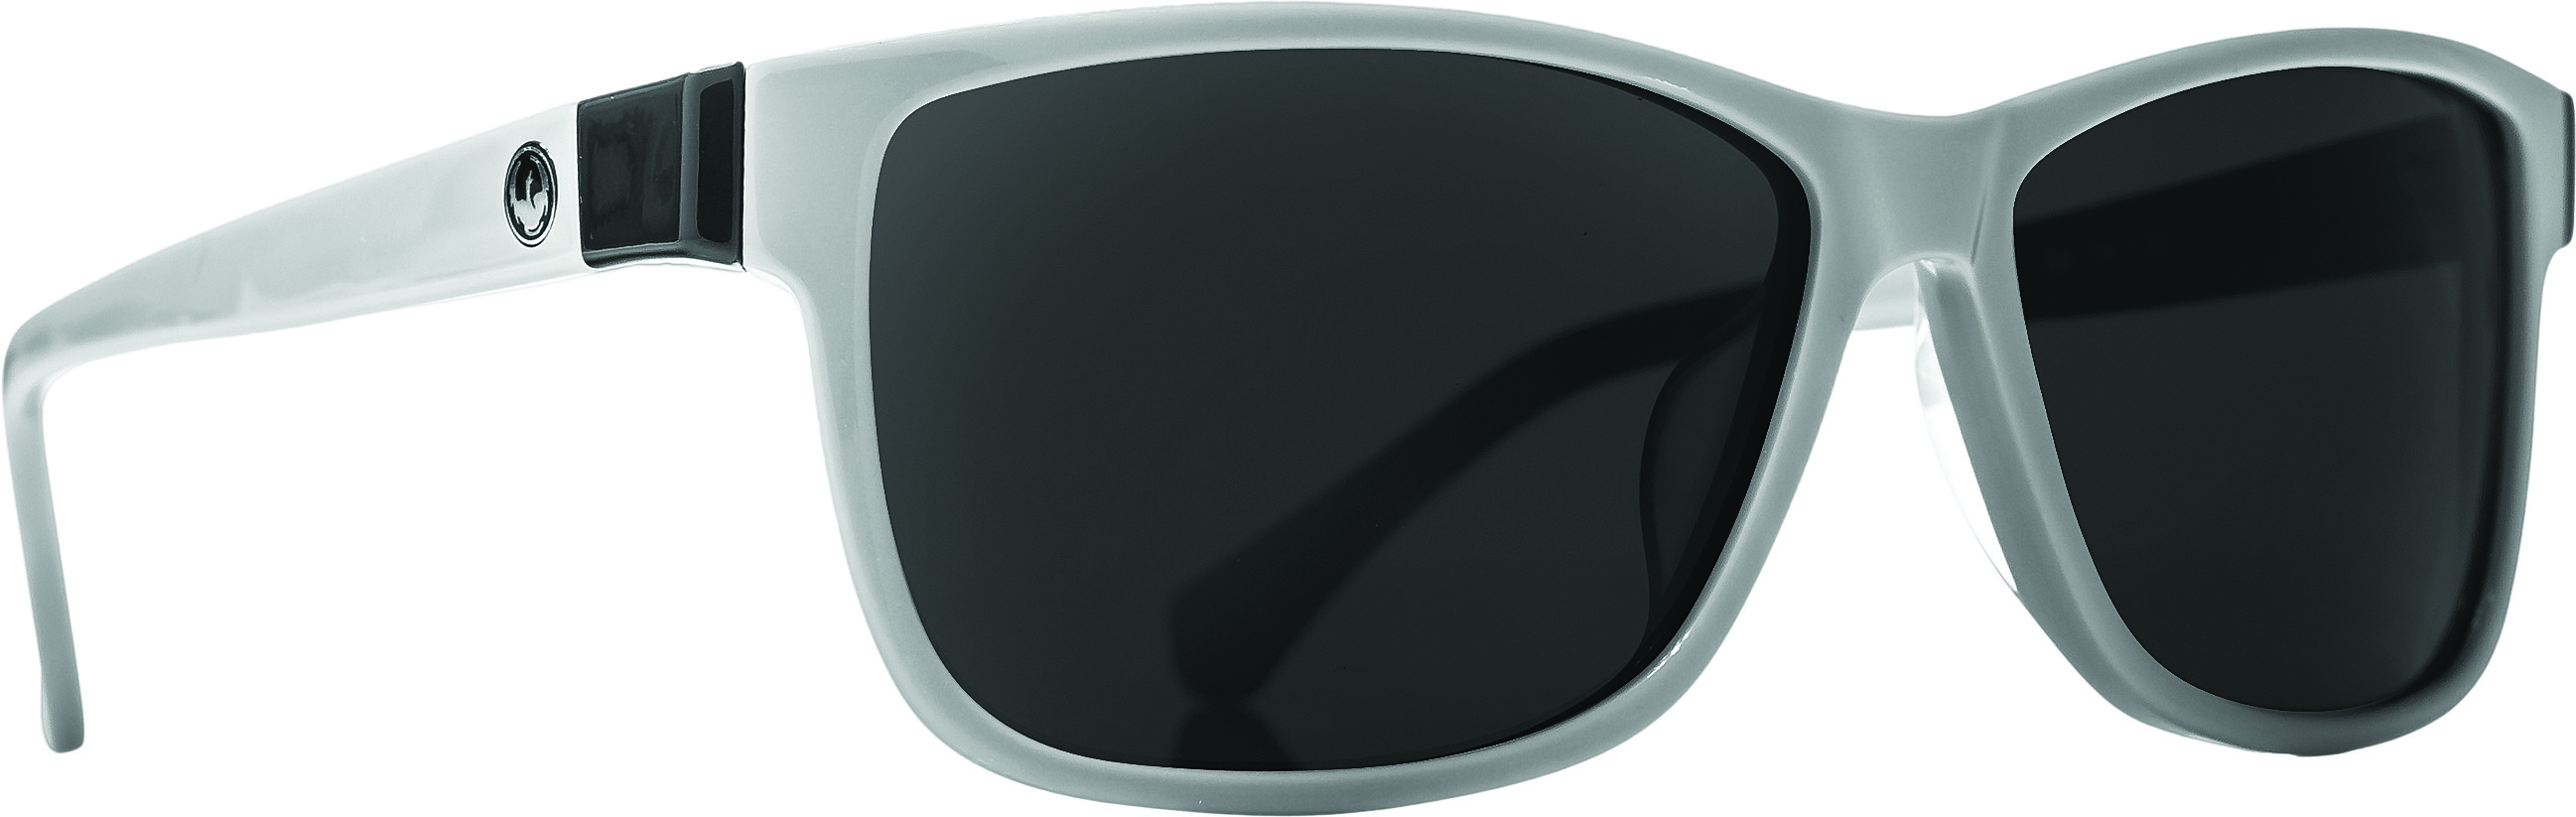 Exit Row Sunglasses Dolphin Grey W/Grey Lens